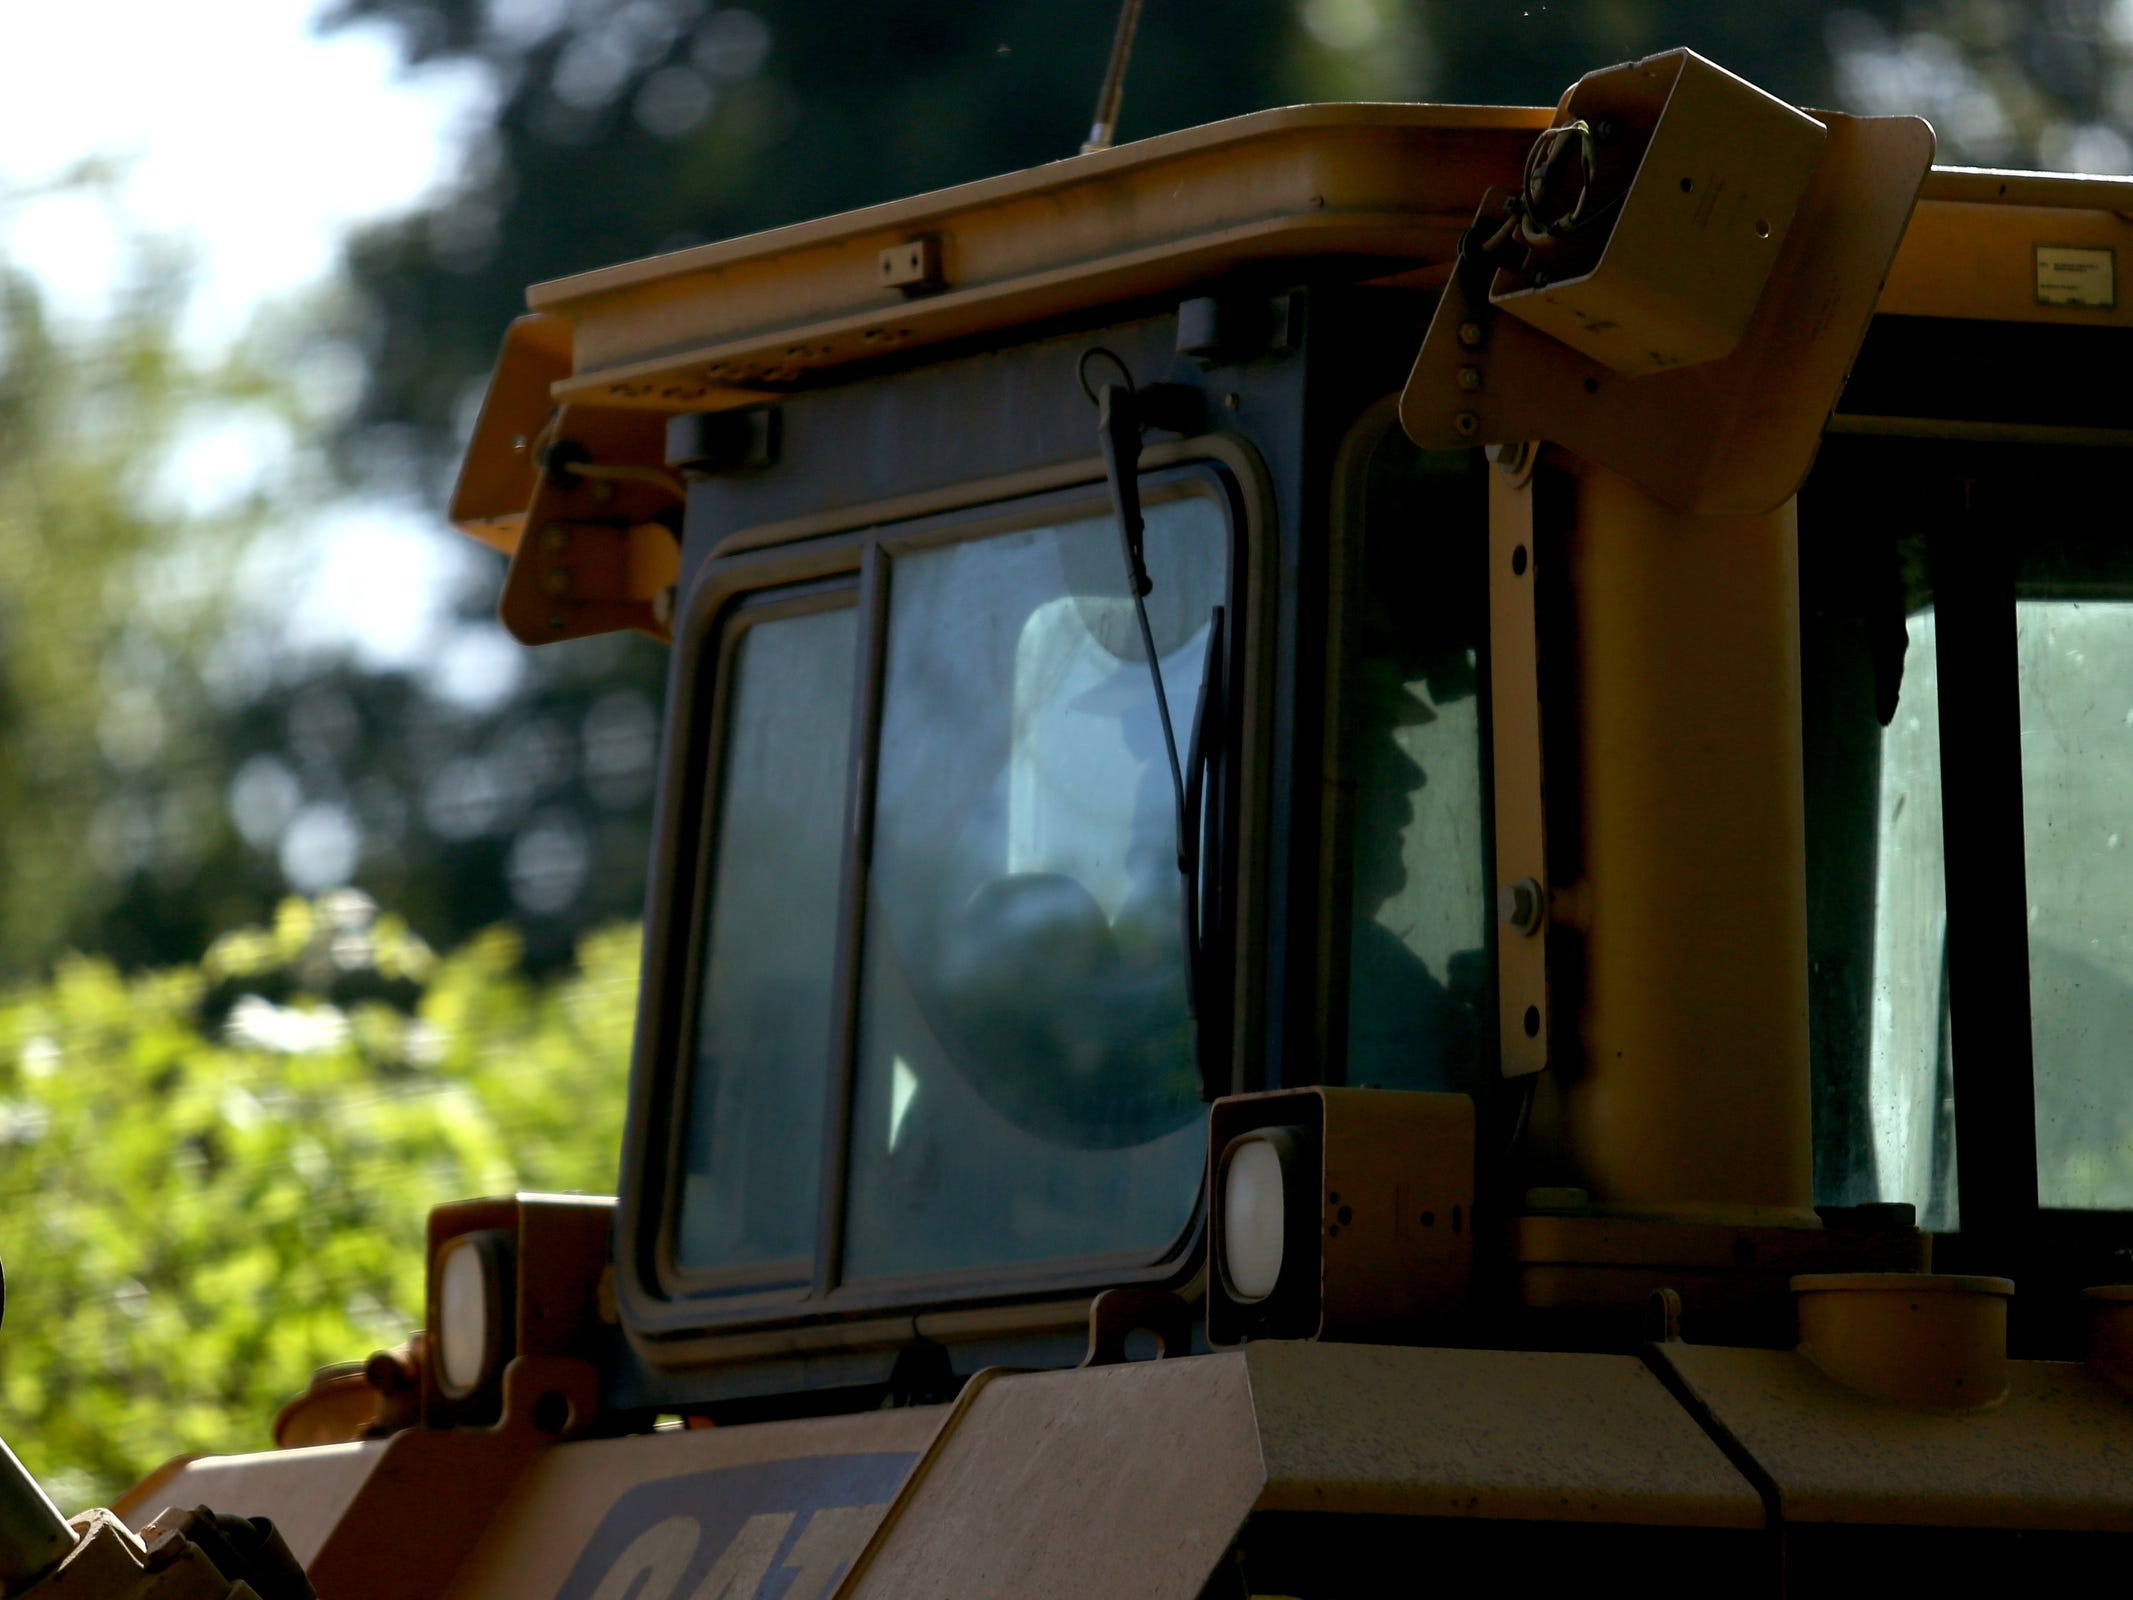 A bulldozer comes in to a privately-owned rock quarry with a homeless camp near Wallace Marine Park in West Salem on May 7, 2019. Signs were posted throughout the camp recently stating personal property must be removed or it will be taken by the landowner and its designated agent starting May 7. An eviction can't be enforced until a court approves it.